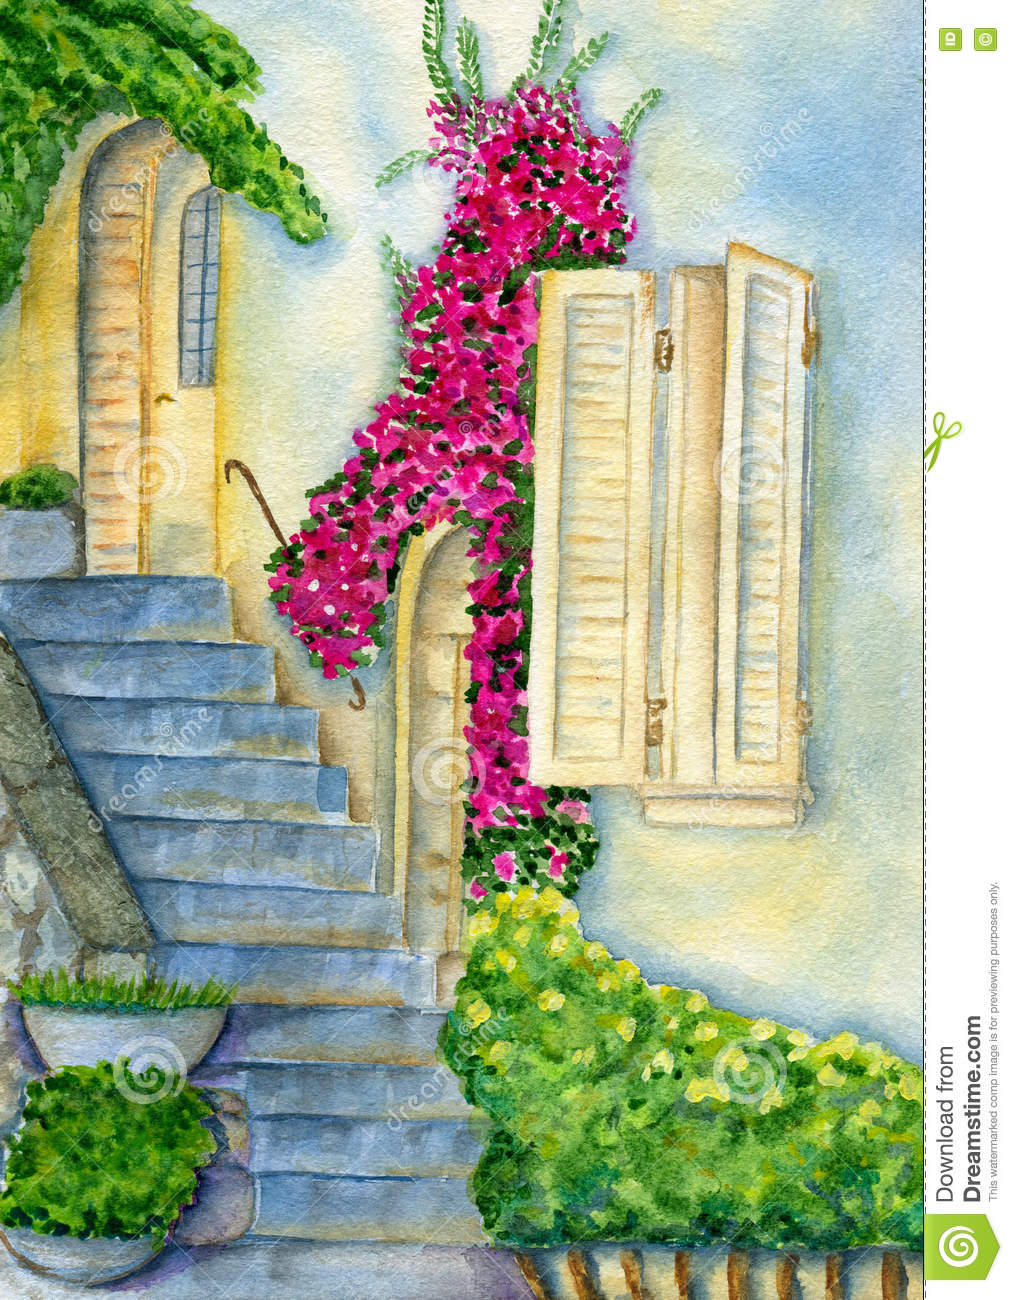 Wall of old house stock illustration. Illustration of rustic - 76598102